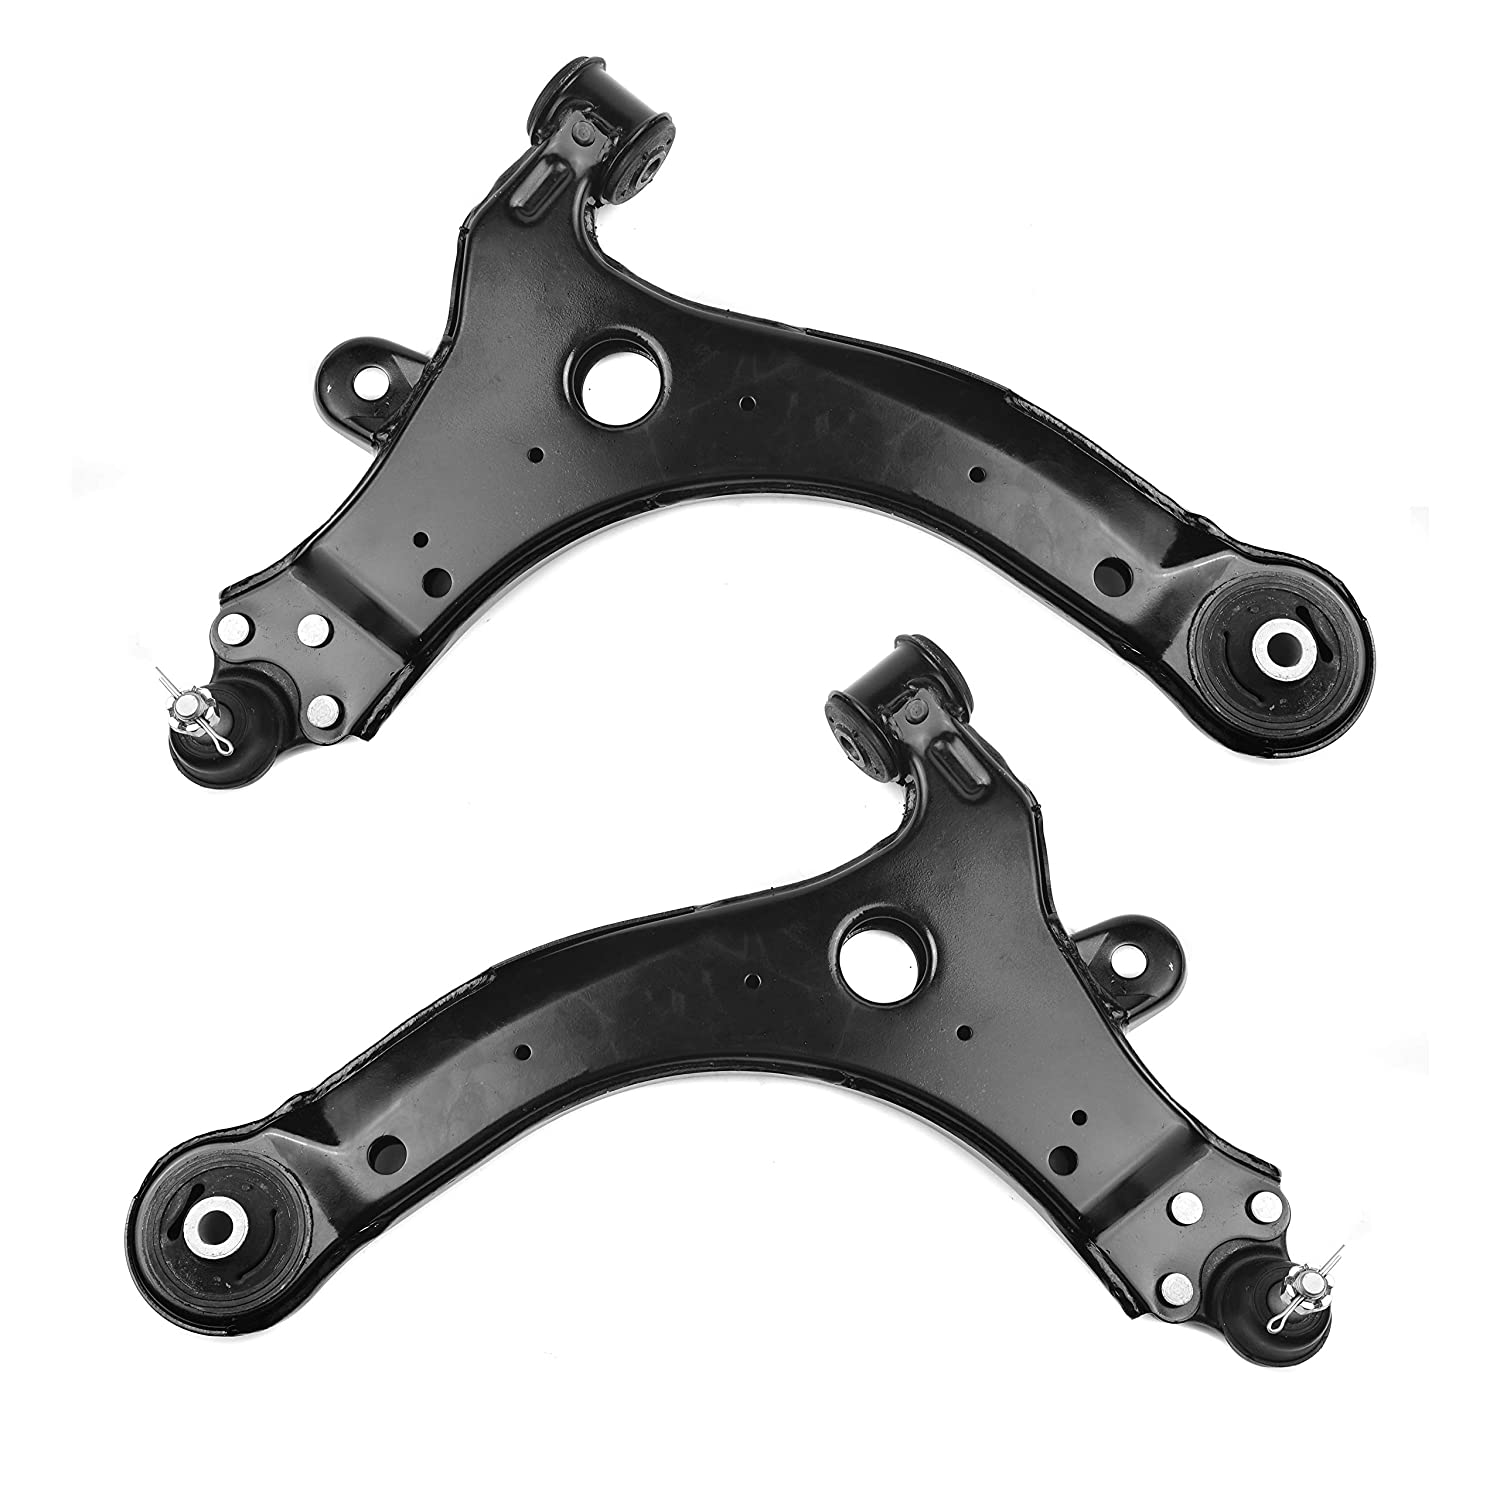 SWAG Exhaust Mount Bracket Holder compatible with Mercedes W126 W124 S124 R129 1264920282